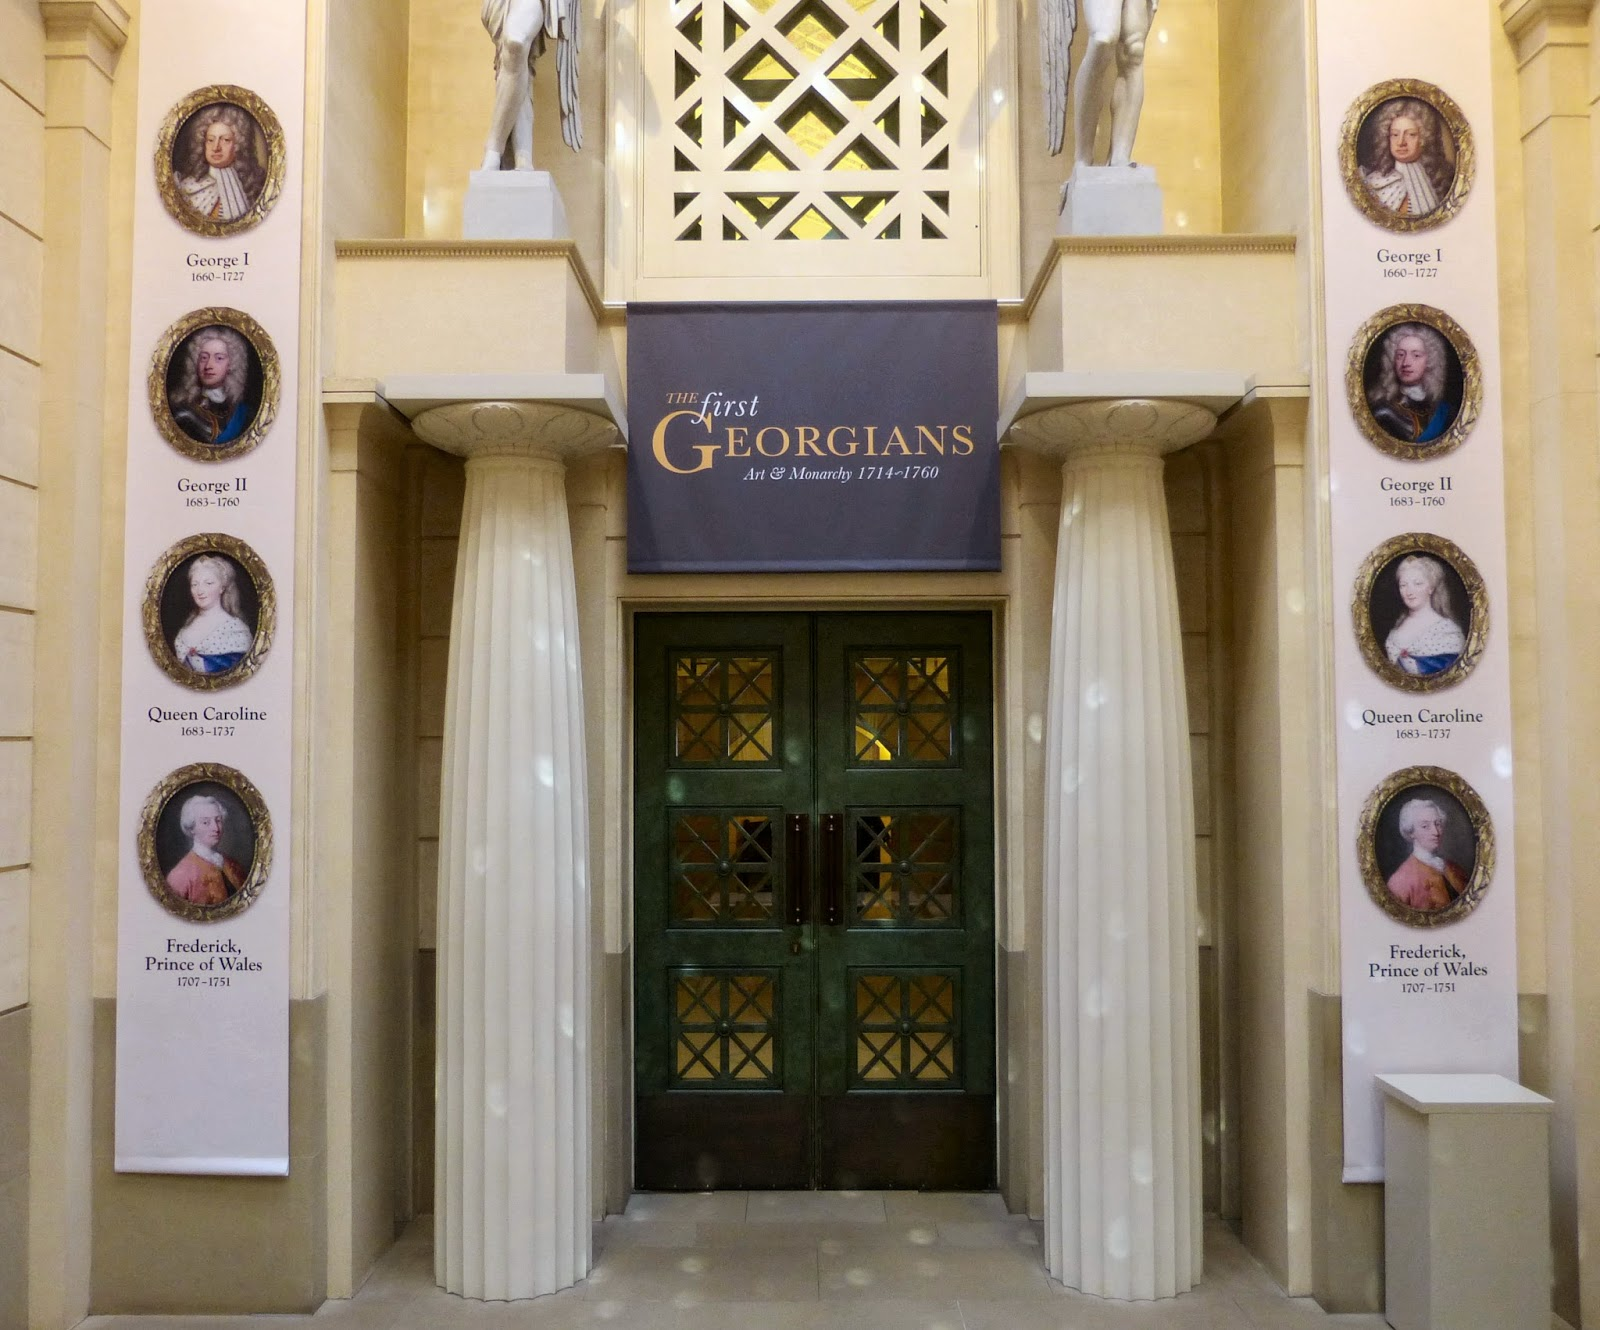 Entrance to The First Georgians exhibition inside the Queen's Gallery, Buckingham Palace